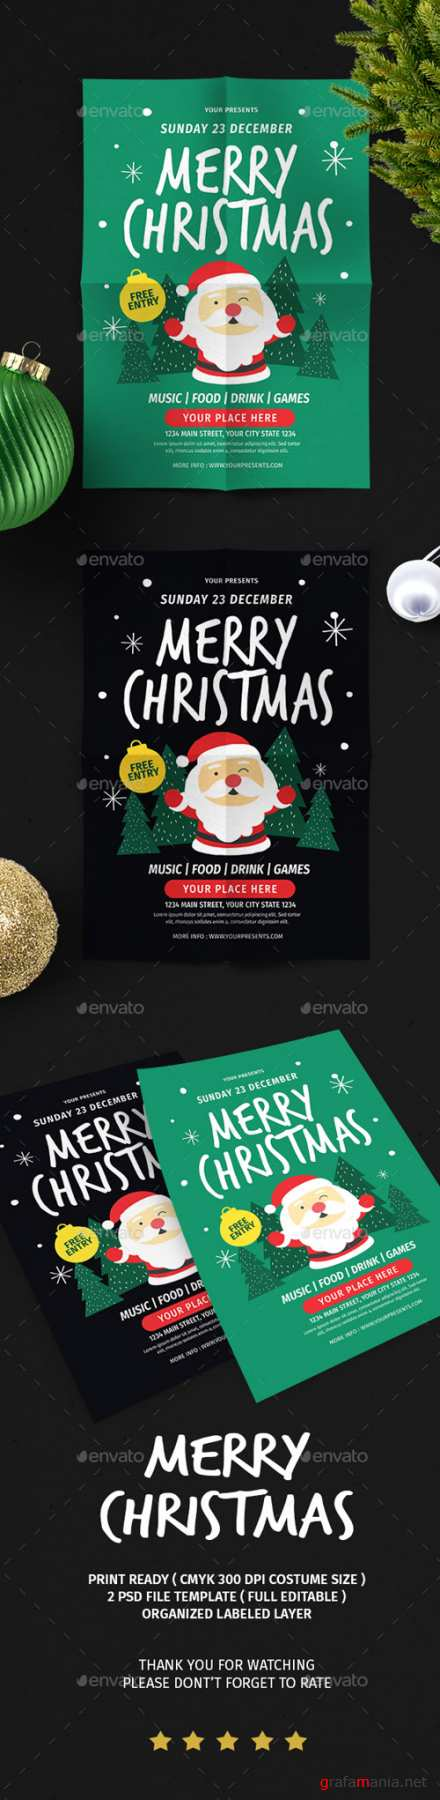 GR - Christmas Flyer Vol.6 20993054